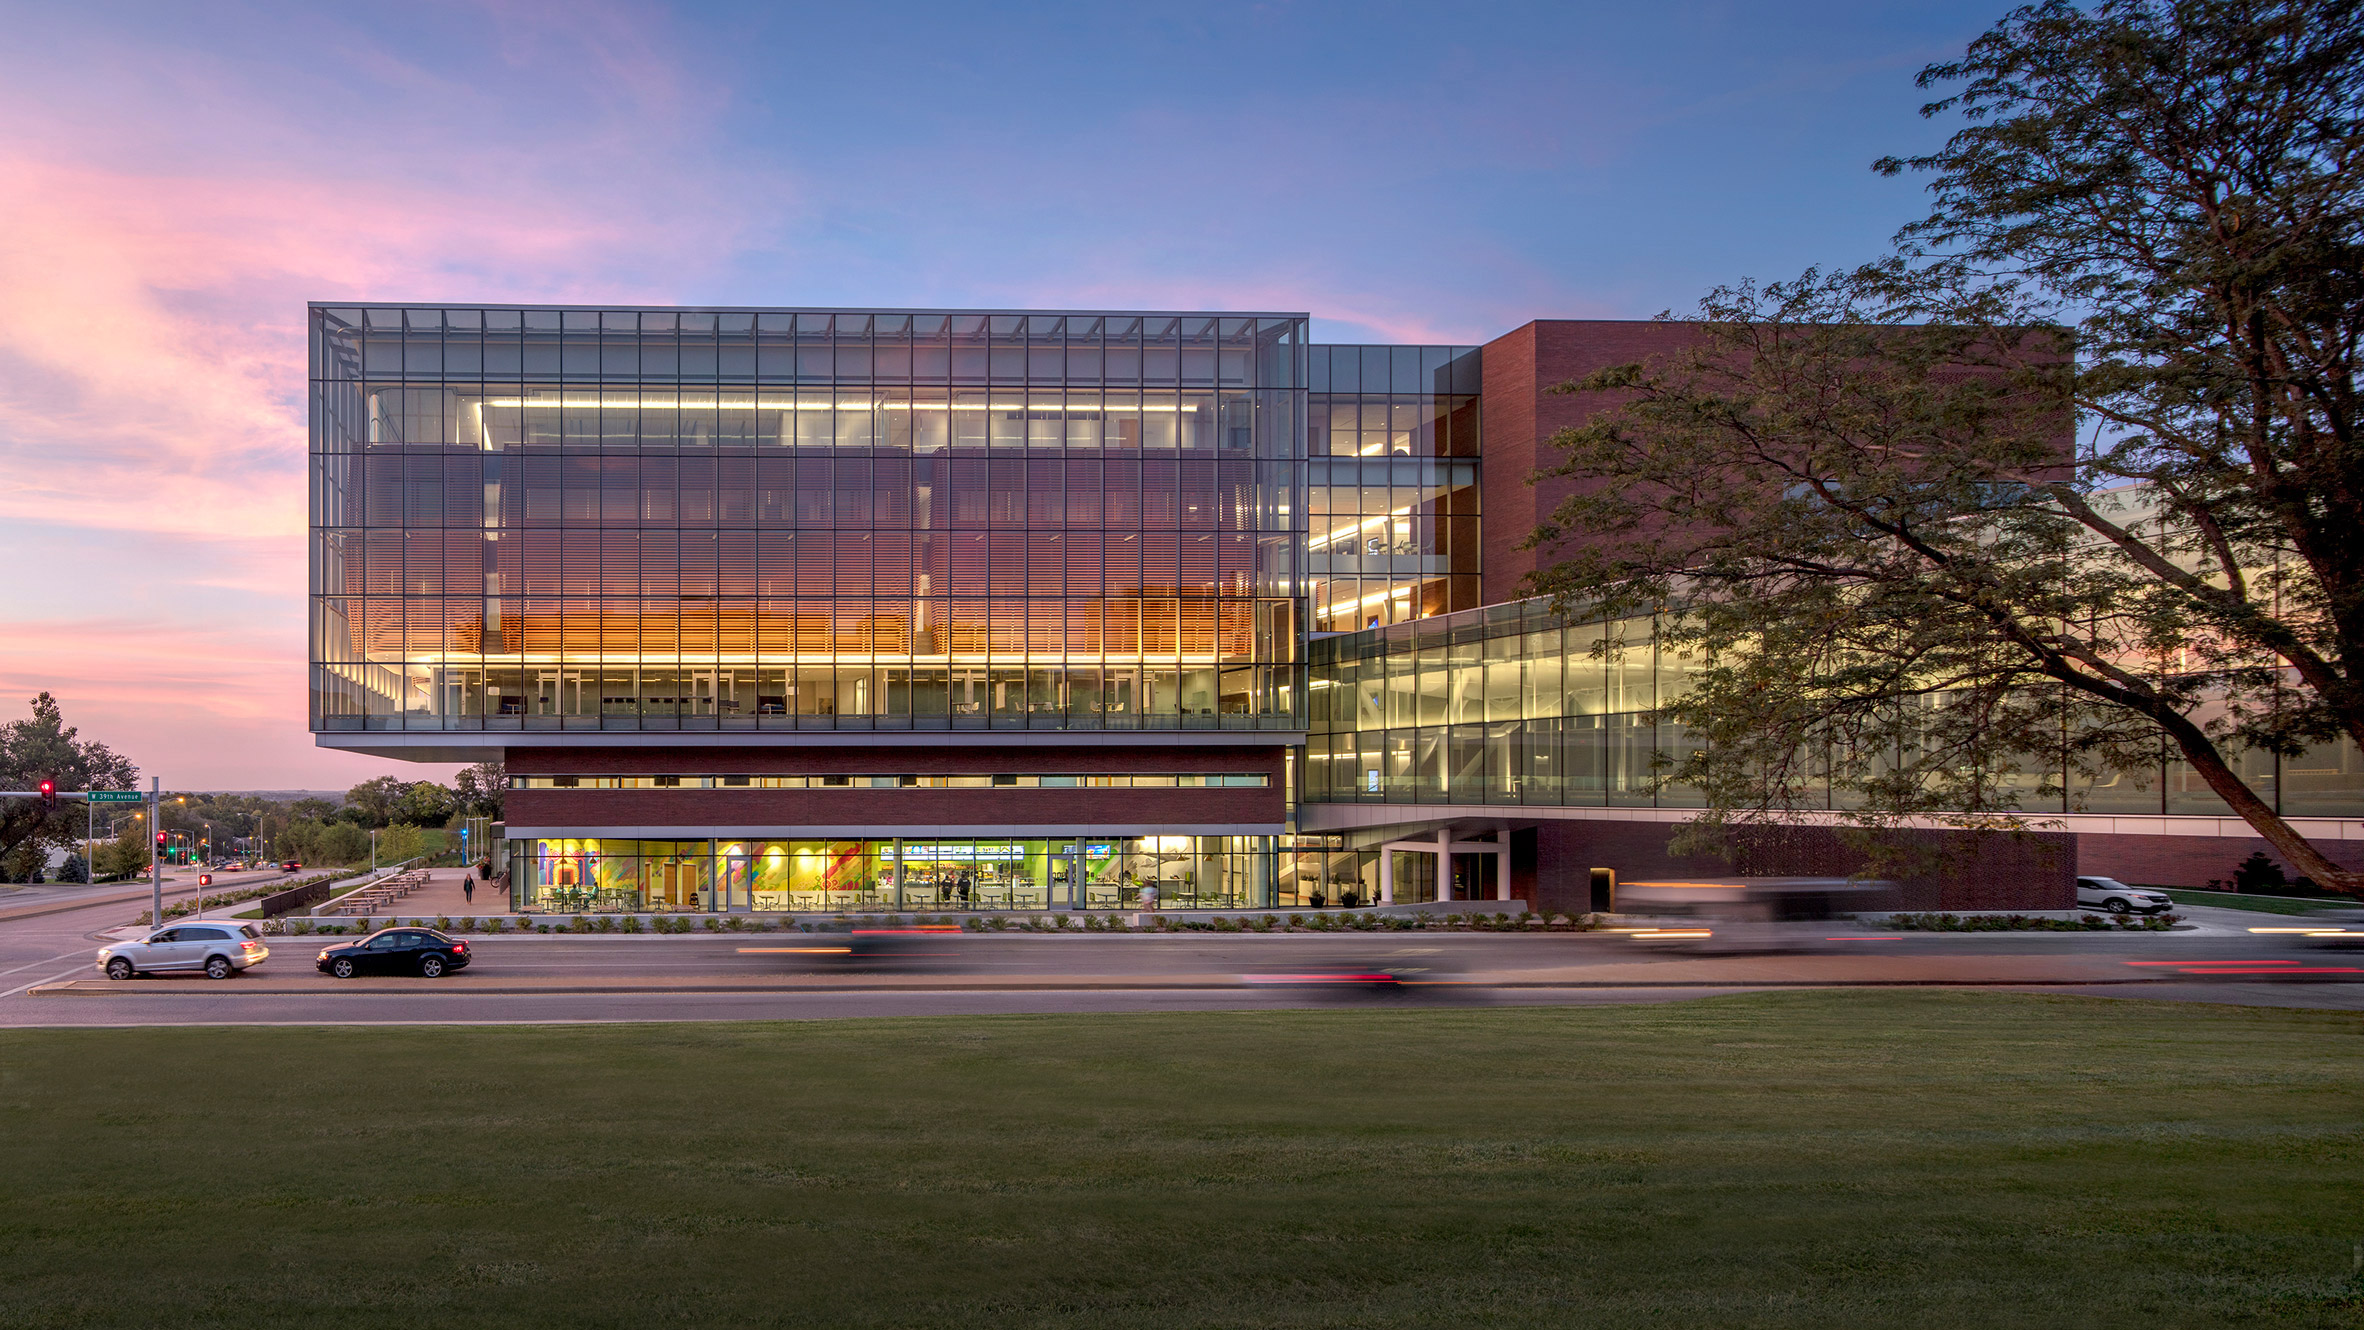 medical-center-university-of-kansas-co-architects-architecture-kansas-city-usa_dezeen_2364_col_4-852x479.jpg